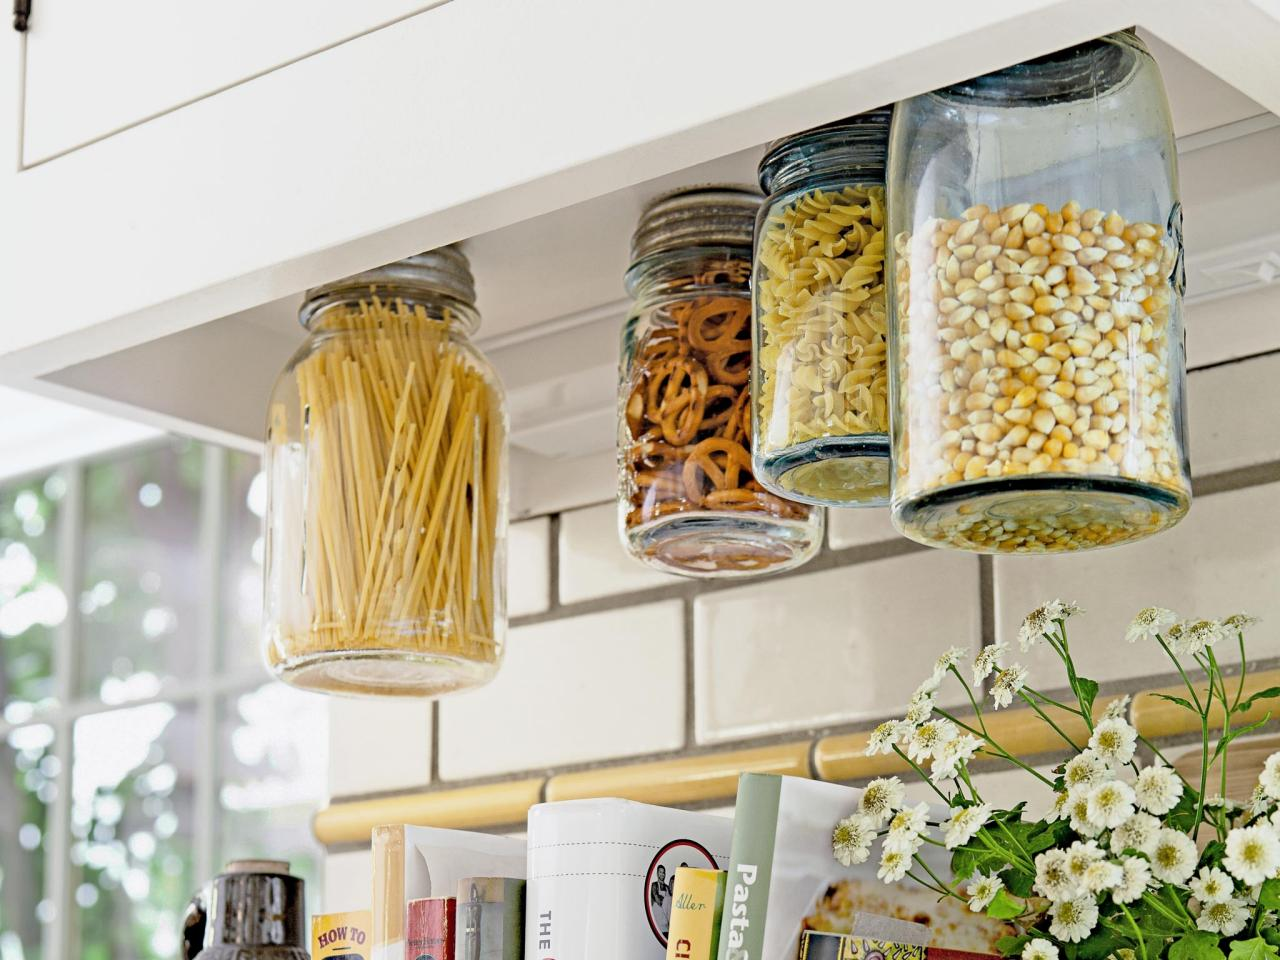 Kitchen Organizer Storage 48 Kitchen Storage Hacks And Solutions For Your Home